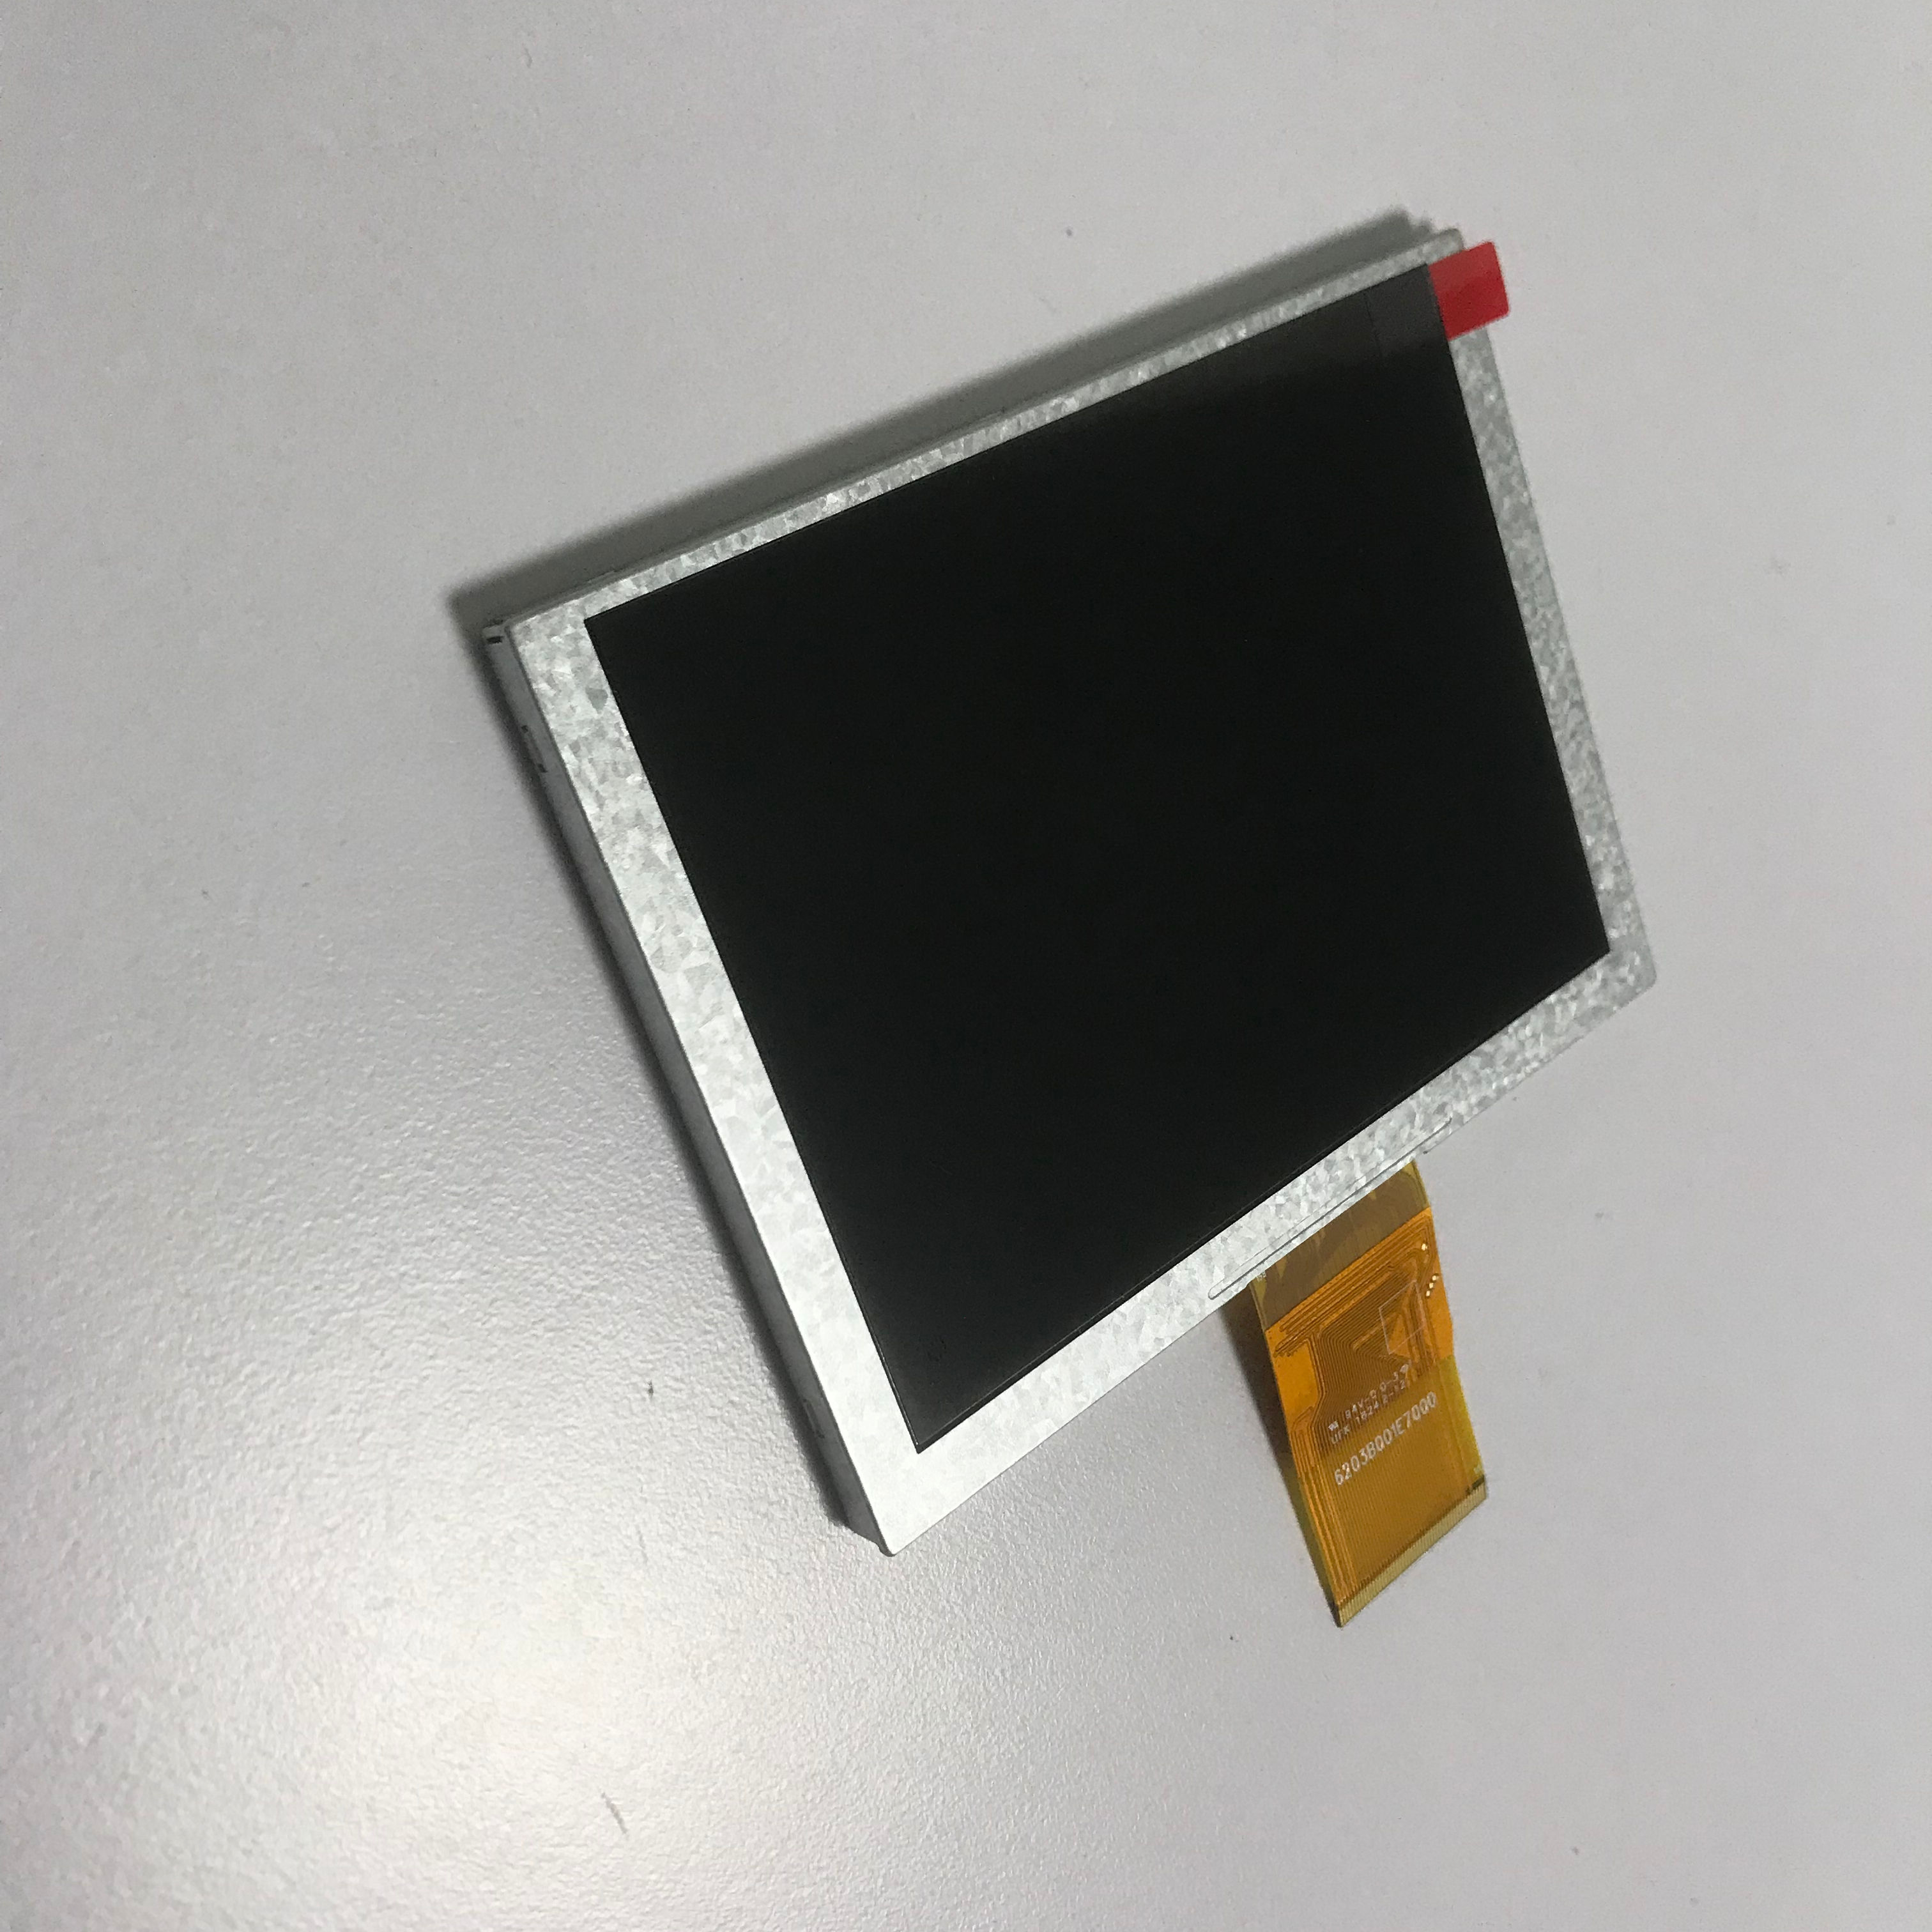 5.0 inch 640x480 RGB Interface TFT Square LCD Display panel for Home Appliance